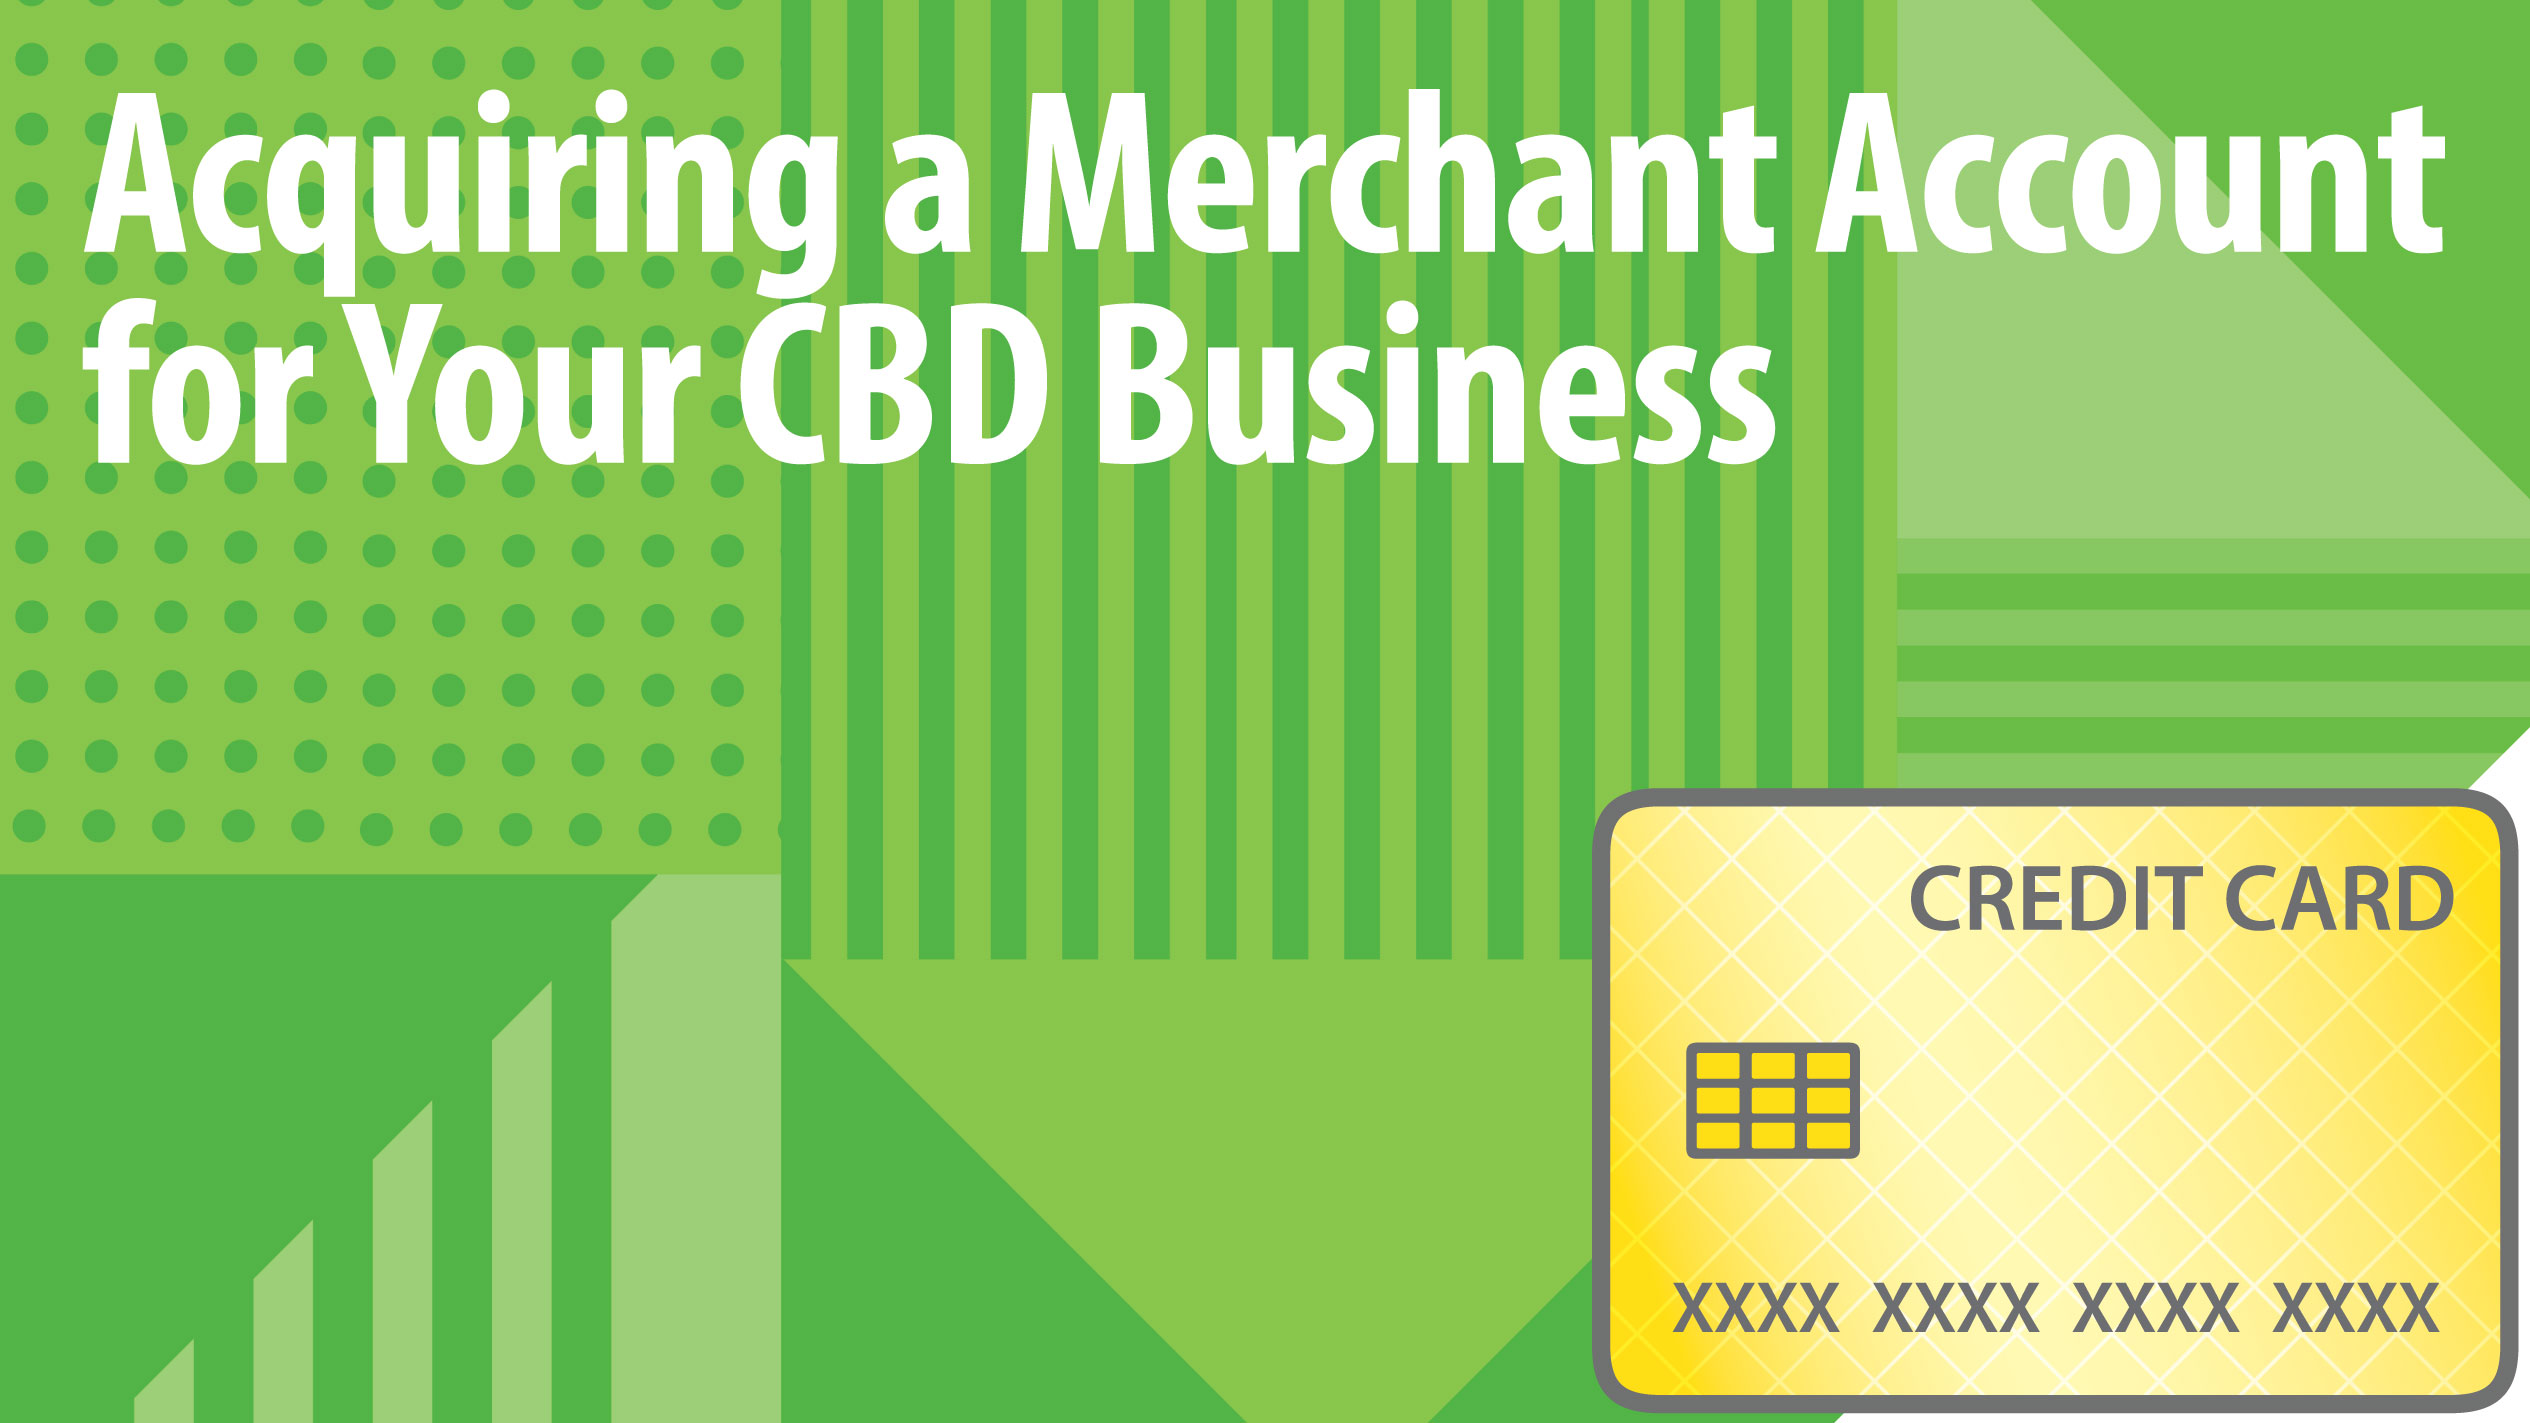 Acquiring a Merchant Account for Your CBD Business - PaymentCloud Blog